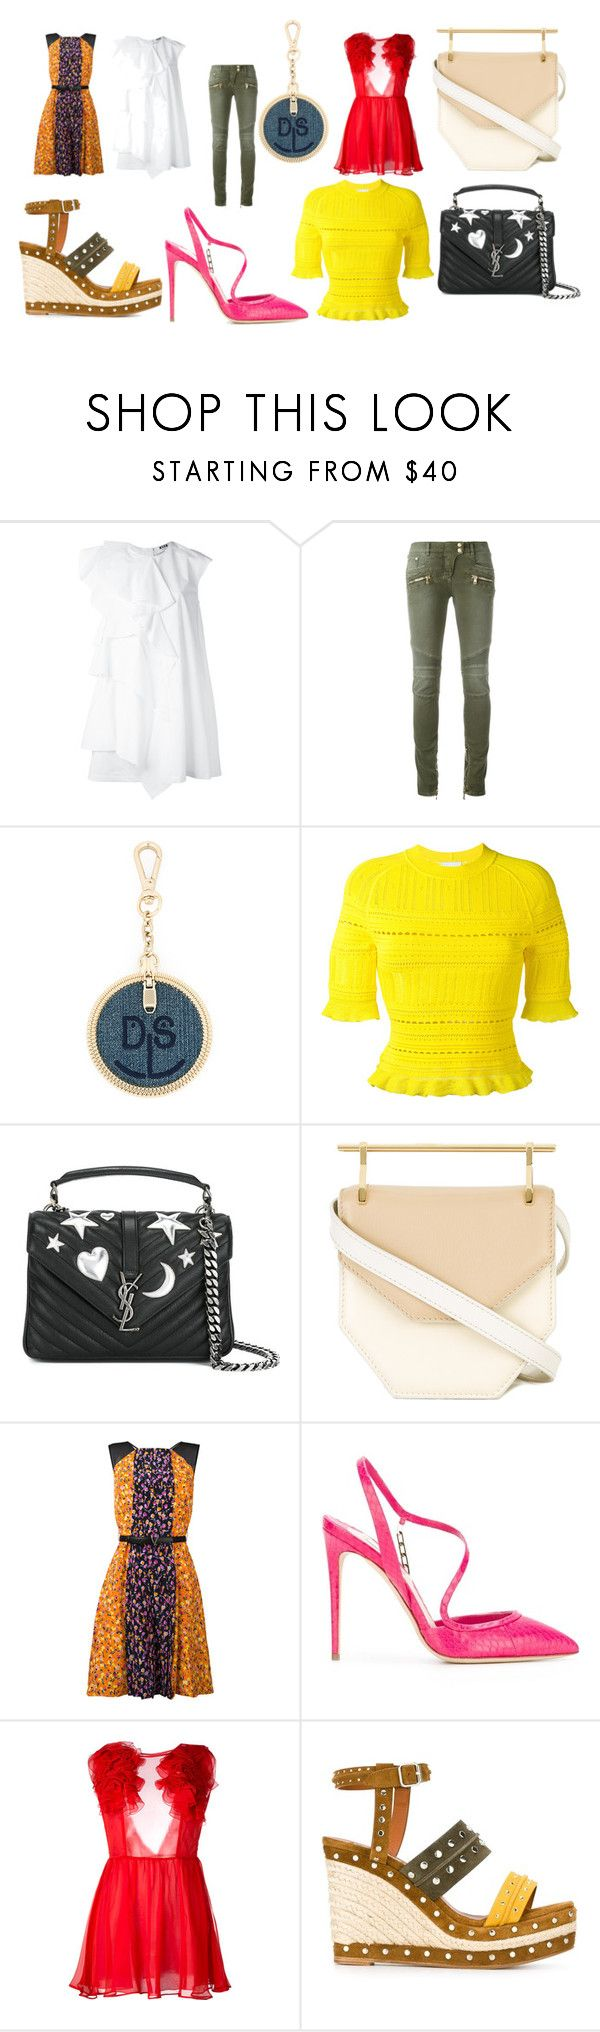 """""""fashion collection sale"""" by monica022 ❤ liked on Polyvore featuring MSGM, Balmain, Diesel, 3.1 Phillip Lim, Yves Saint Laurent, M2Malletier, Versace, Olgana, Daniele Carlotta and Lanvin"""